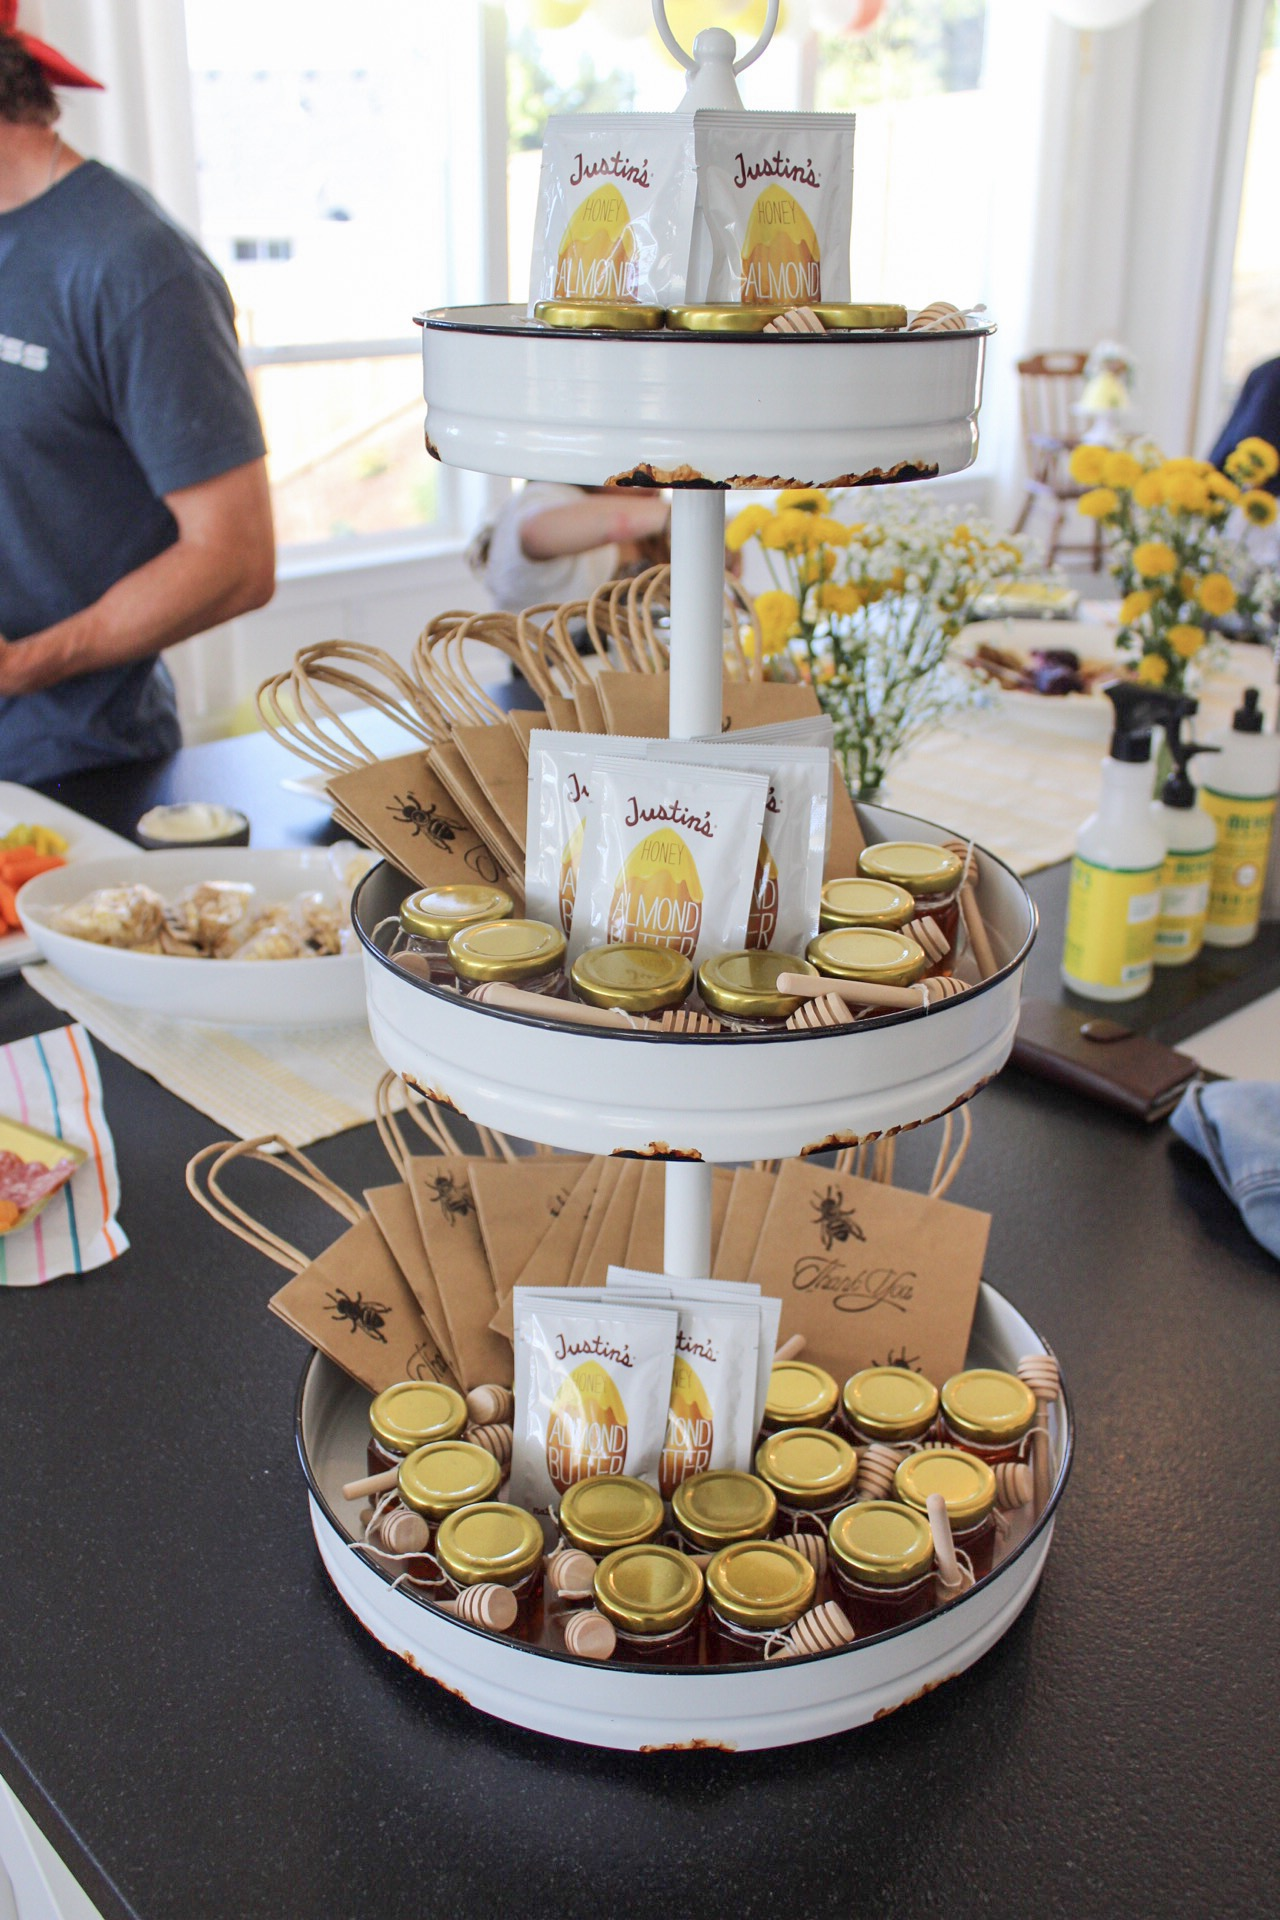 Almond butter and honey party favors.